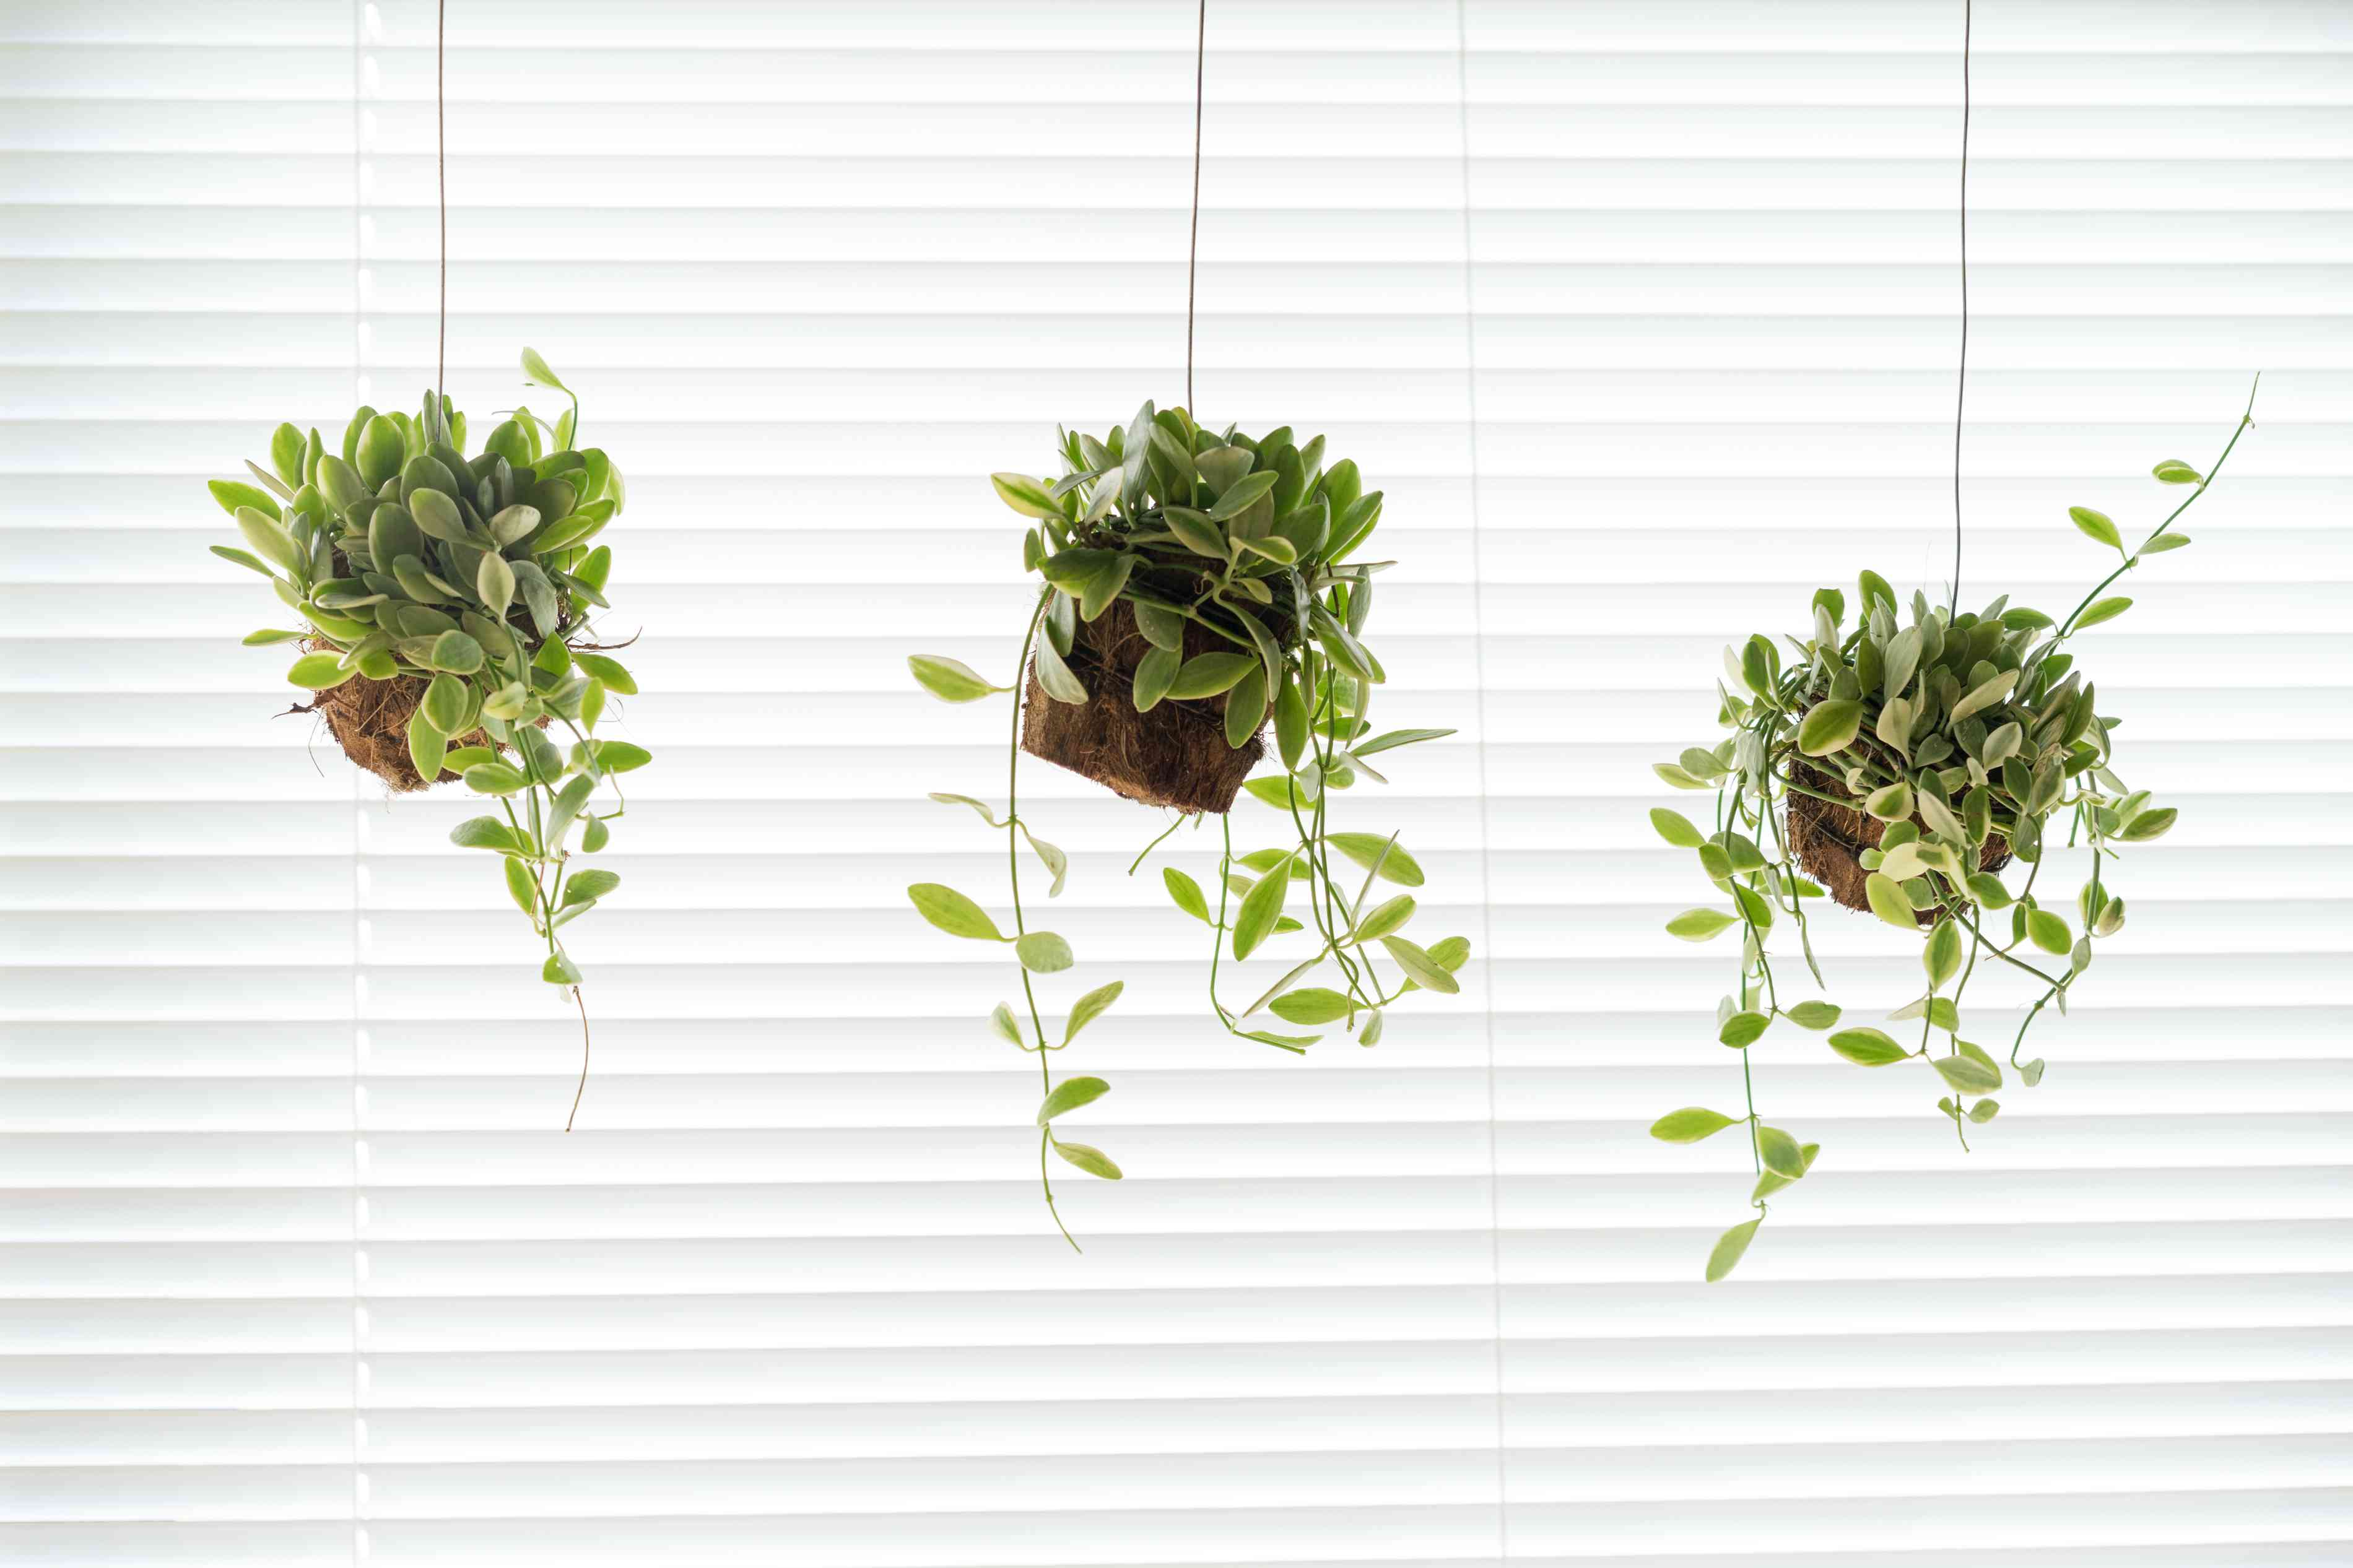 Three string of nickels (Dischidia nummularia) plants in hanging pots in front of a large window.